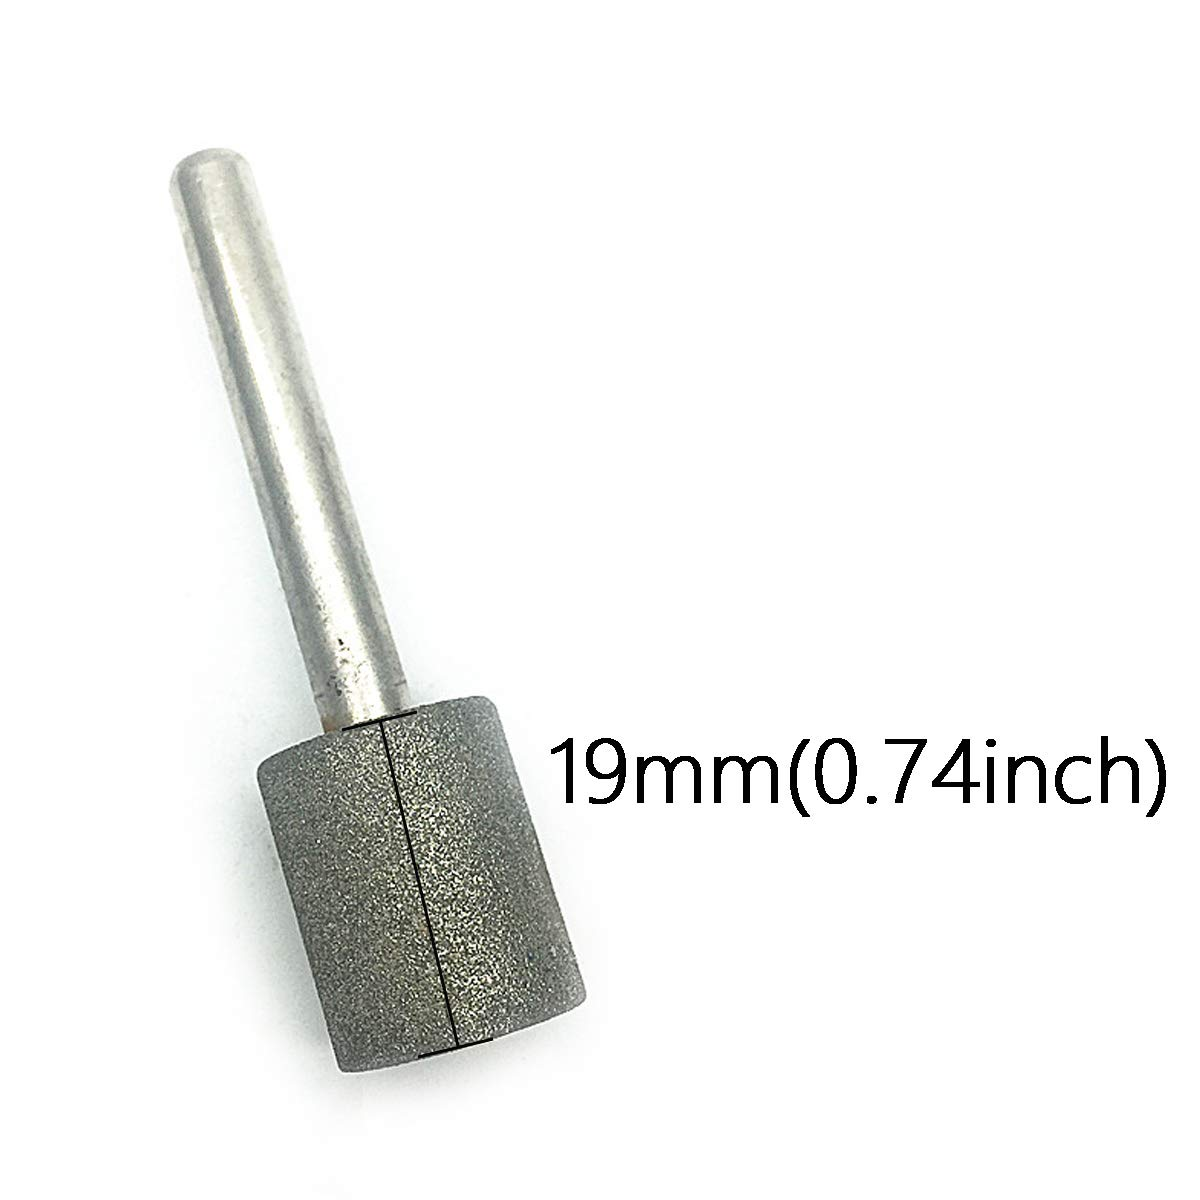 COMOK Grinding Head Diameter 16mm//0.62inch Silver Tone Cylindrical Diamond Grinding Bit Mounted Points 2pcs